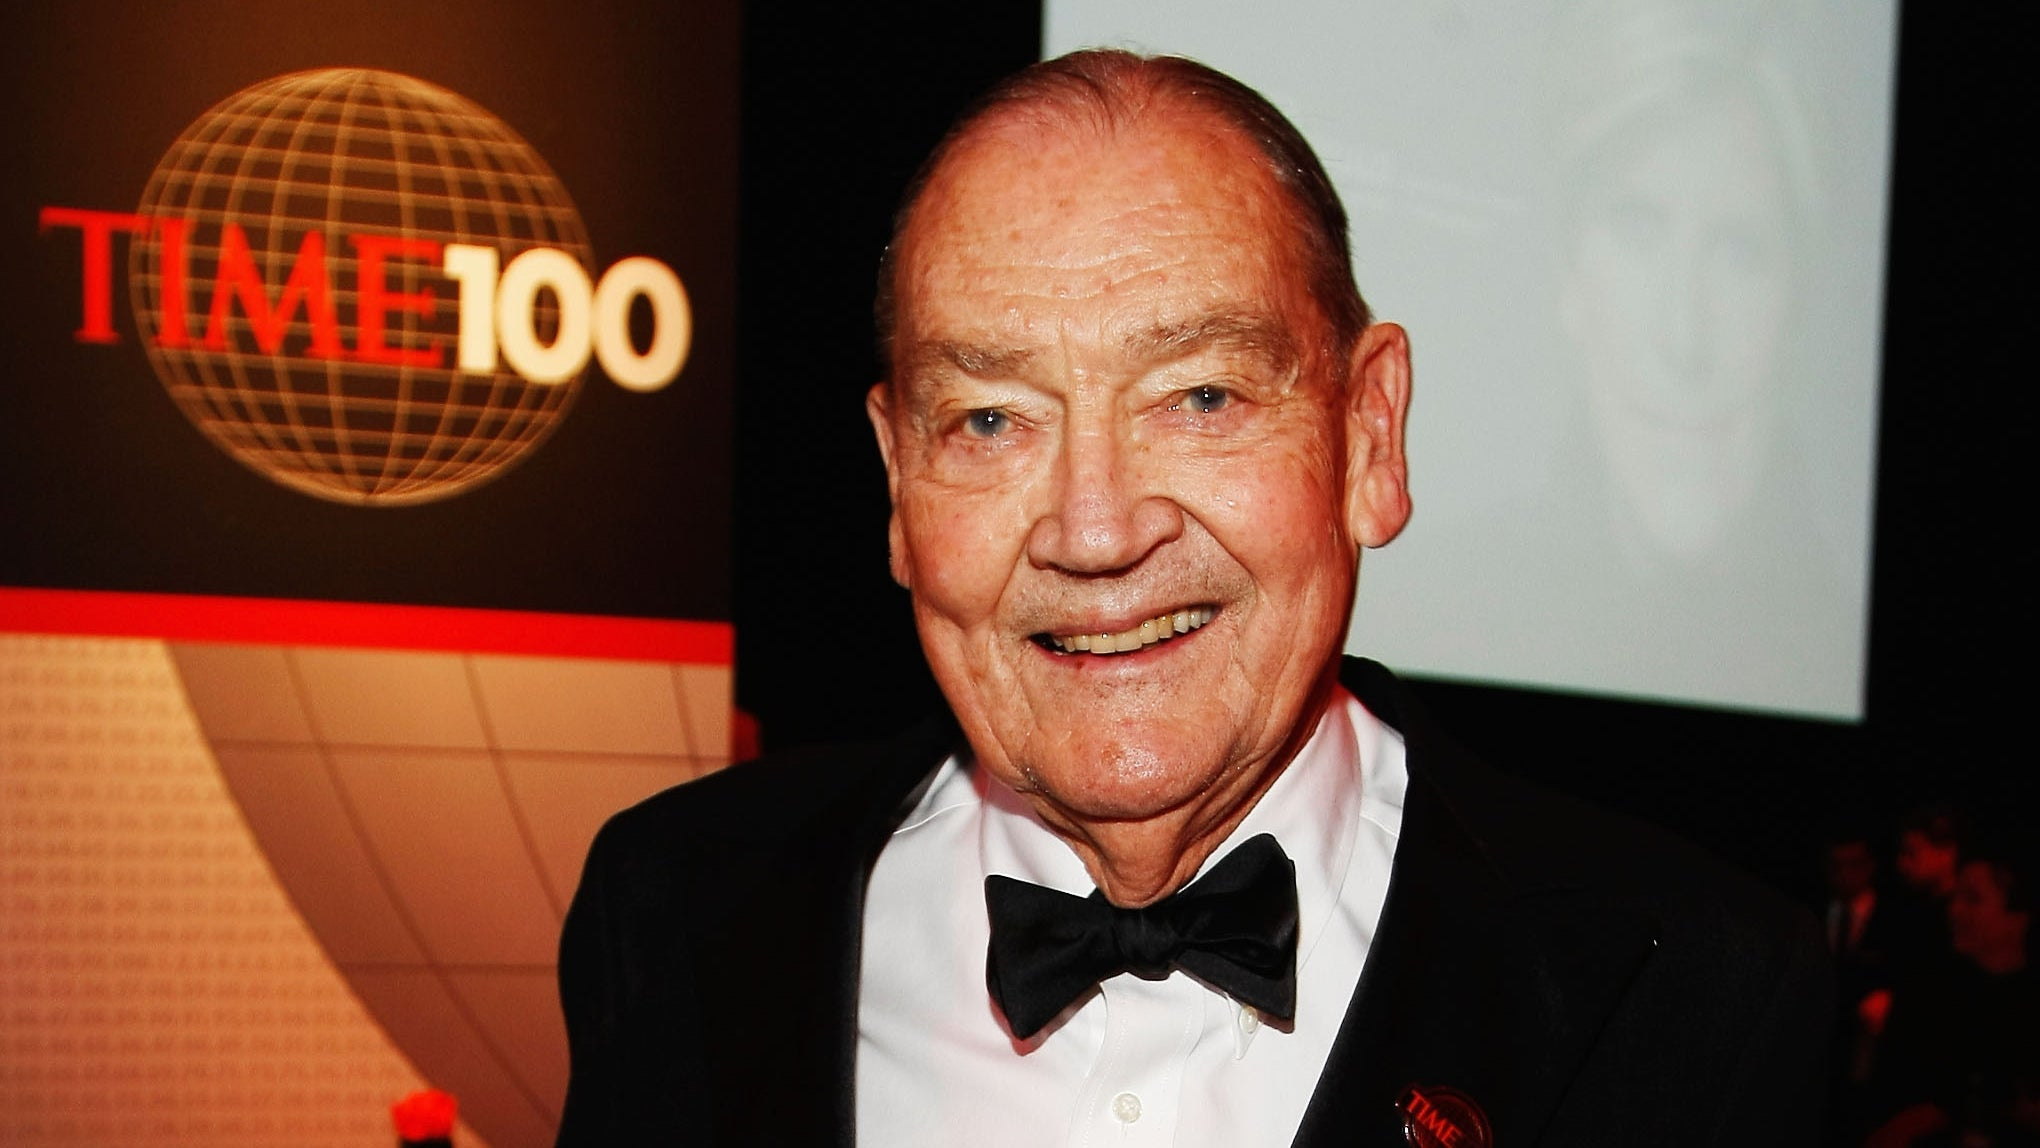 John Bogle's Investing Philosophy Is Still The Best